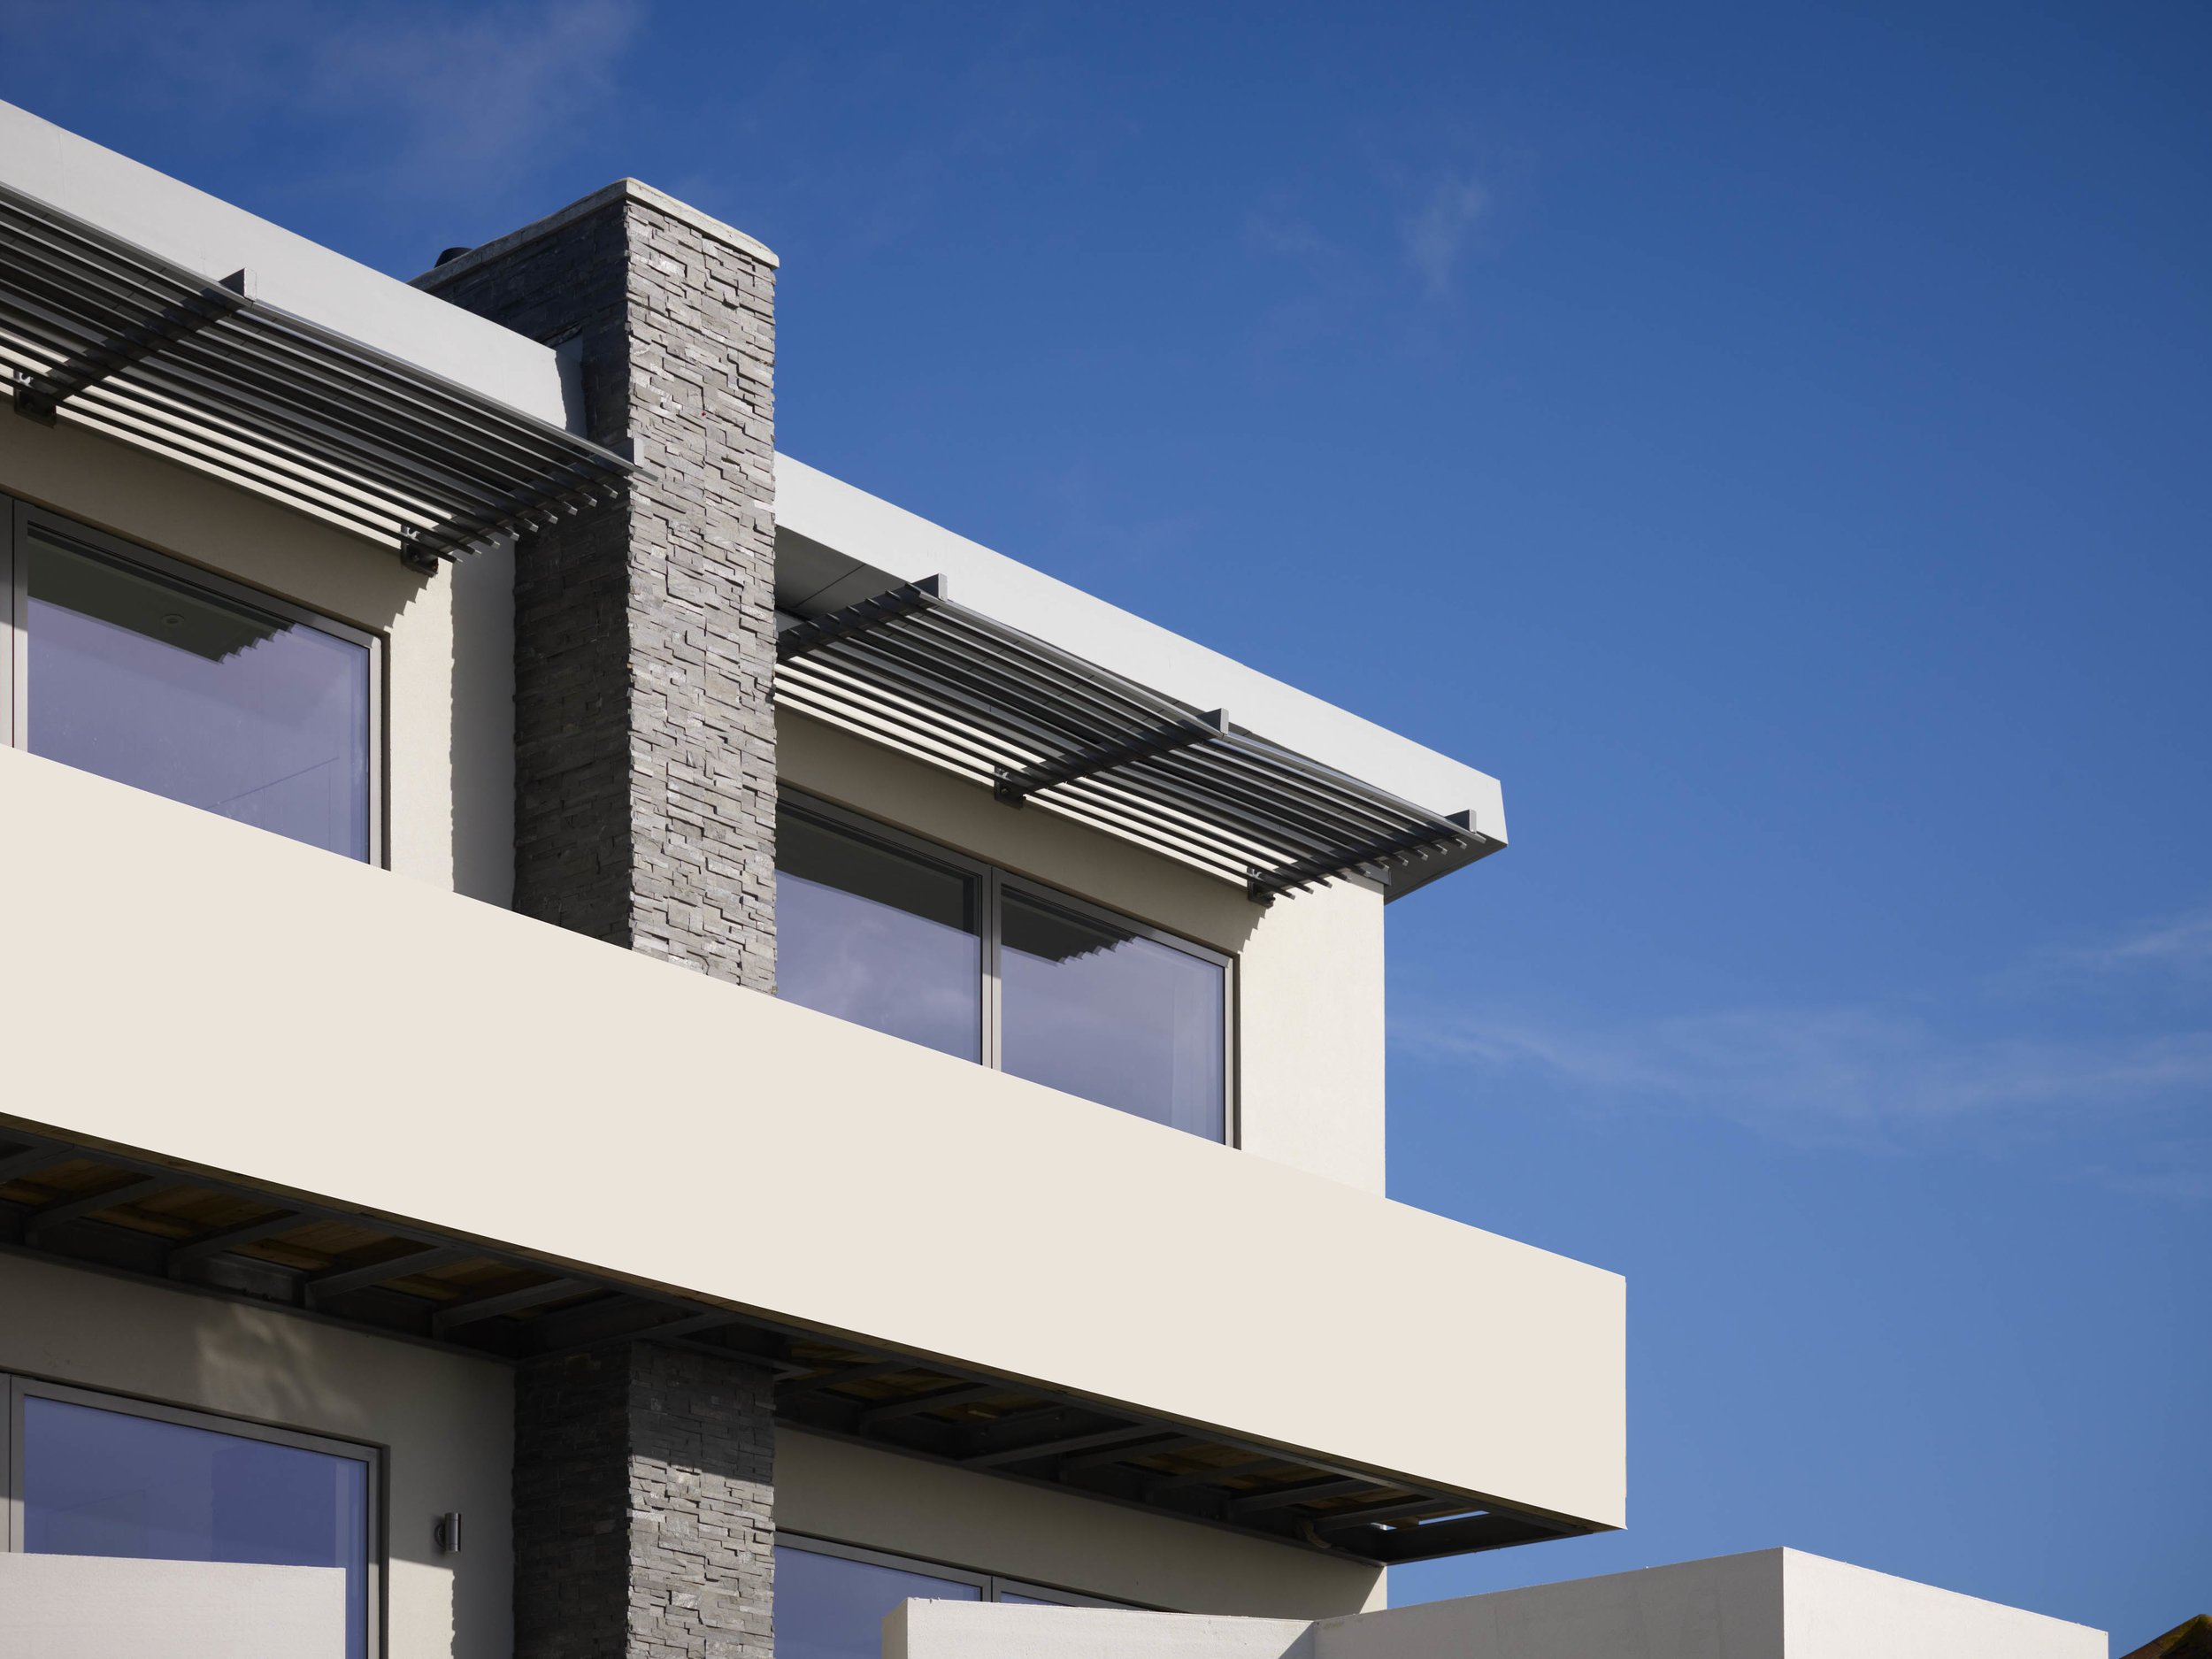 brise soleil and large expanses of glazing